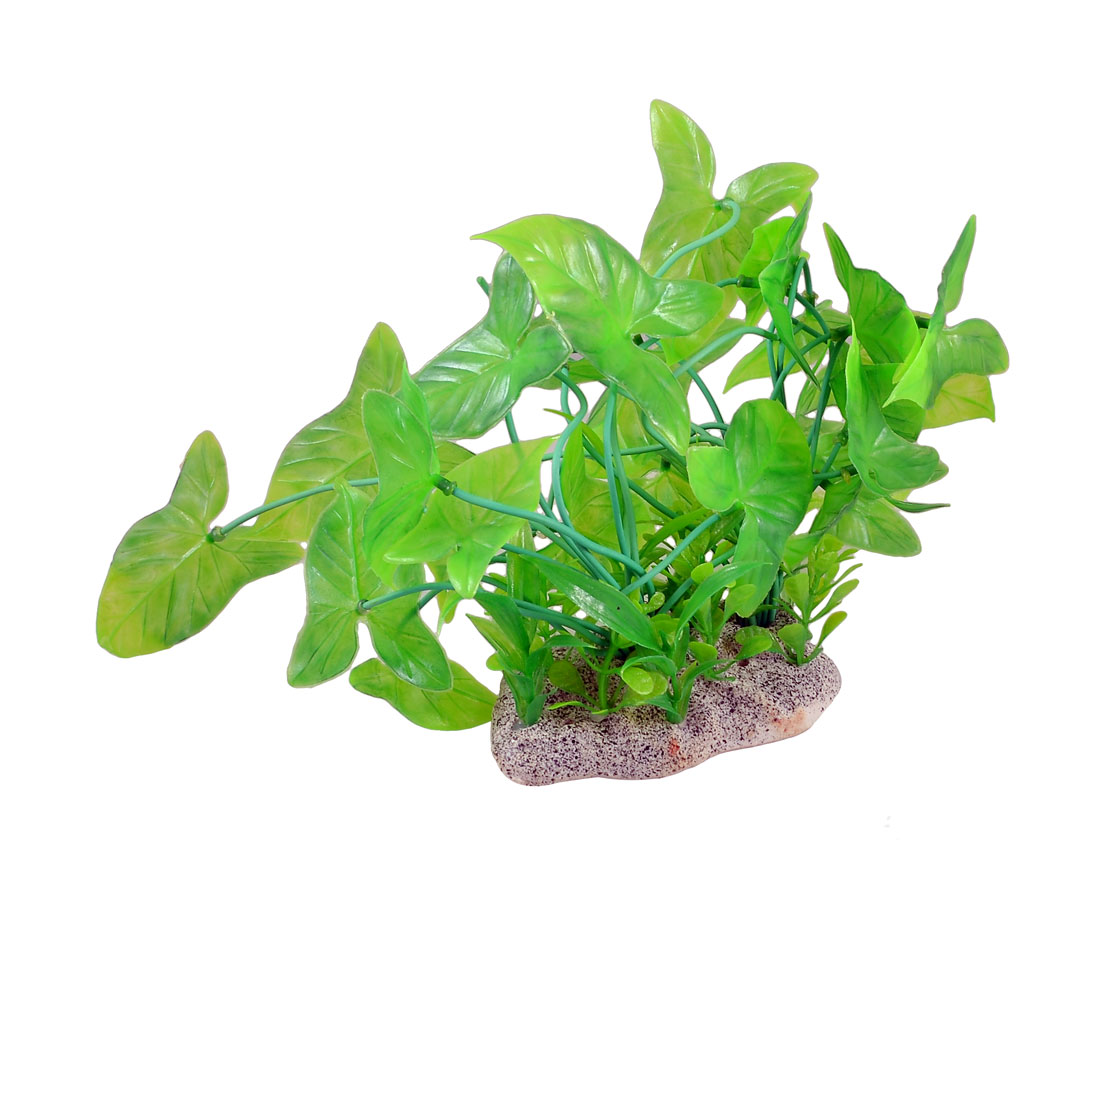 "Artificial 7.5"" Height Green Water Grass Plants for Aquarium Fish Tank Decor"